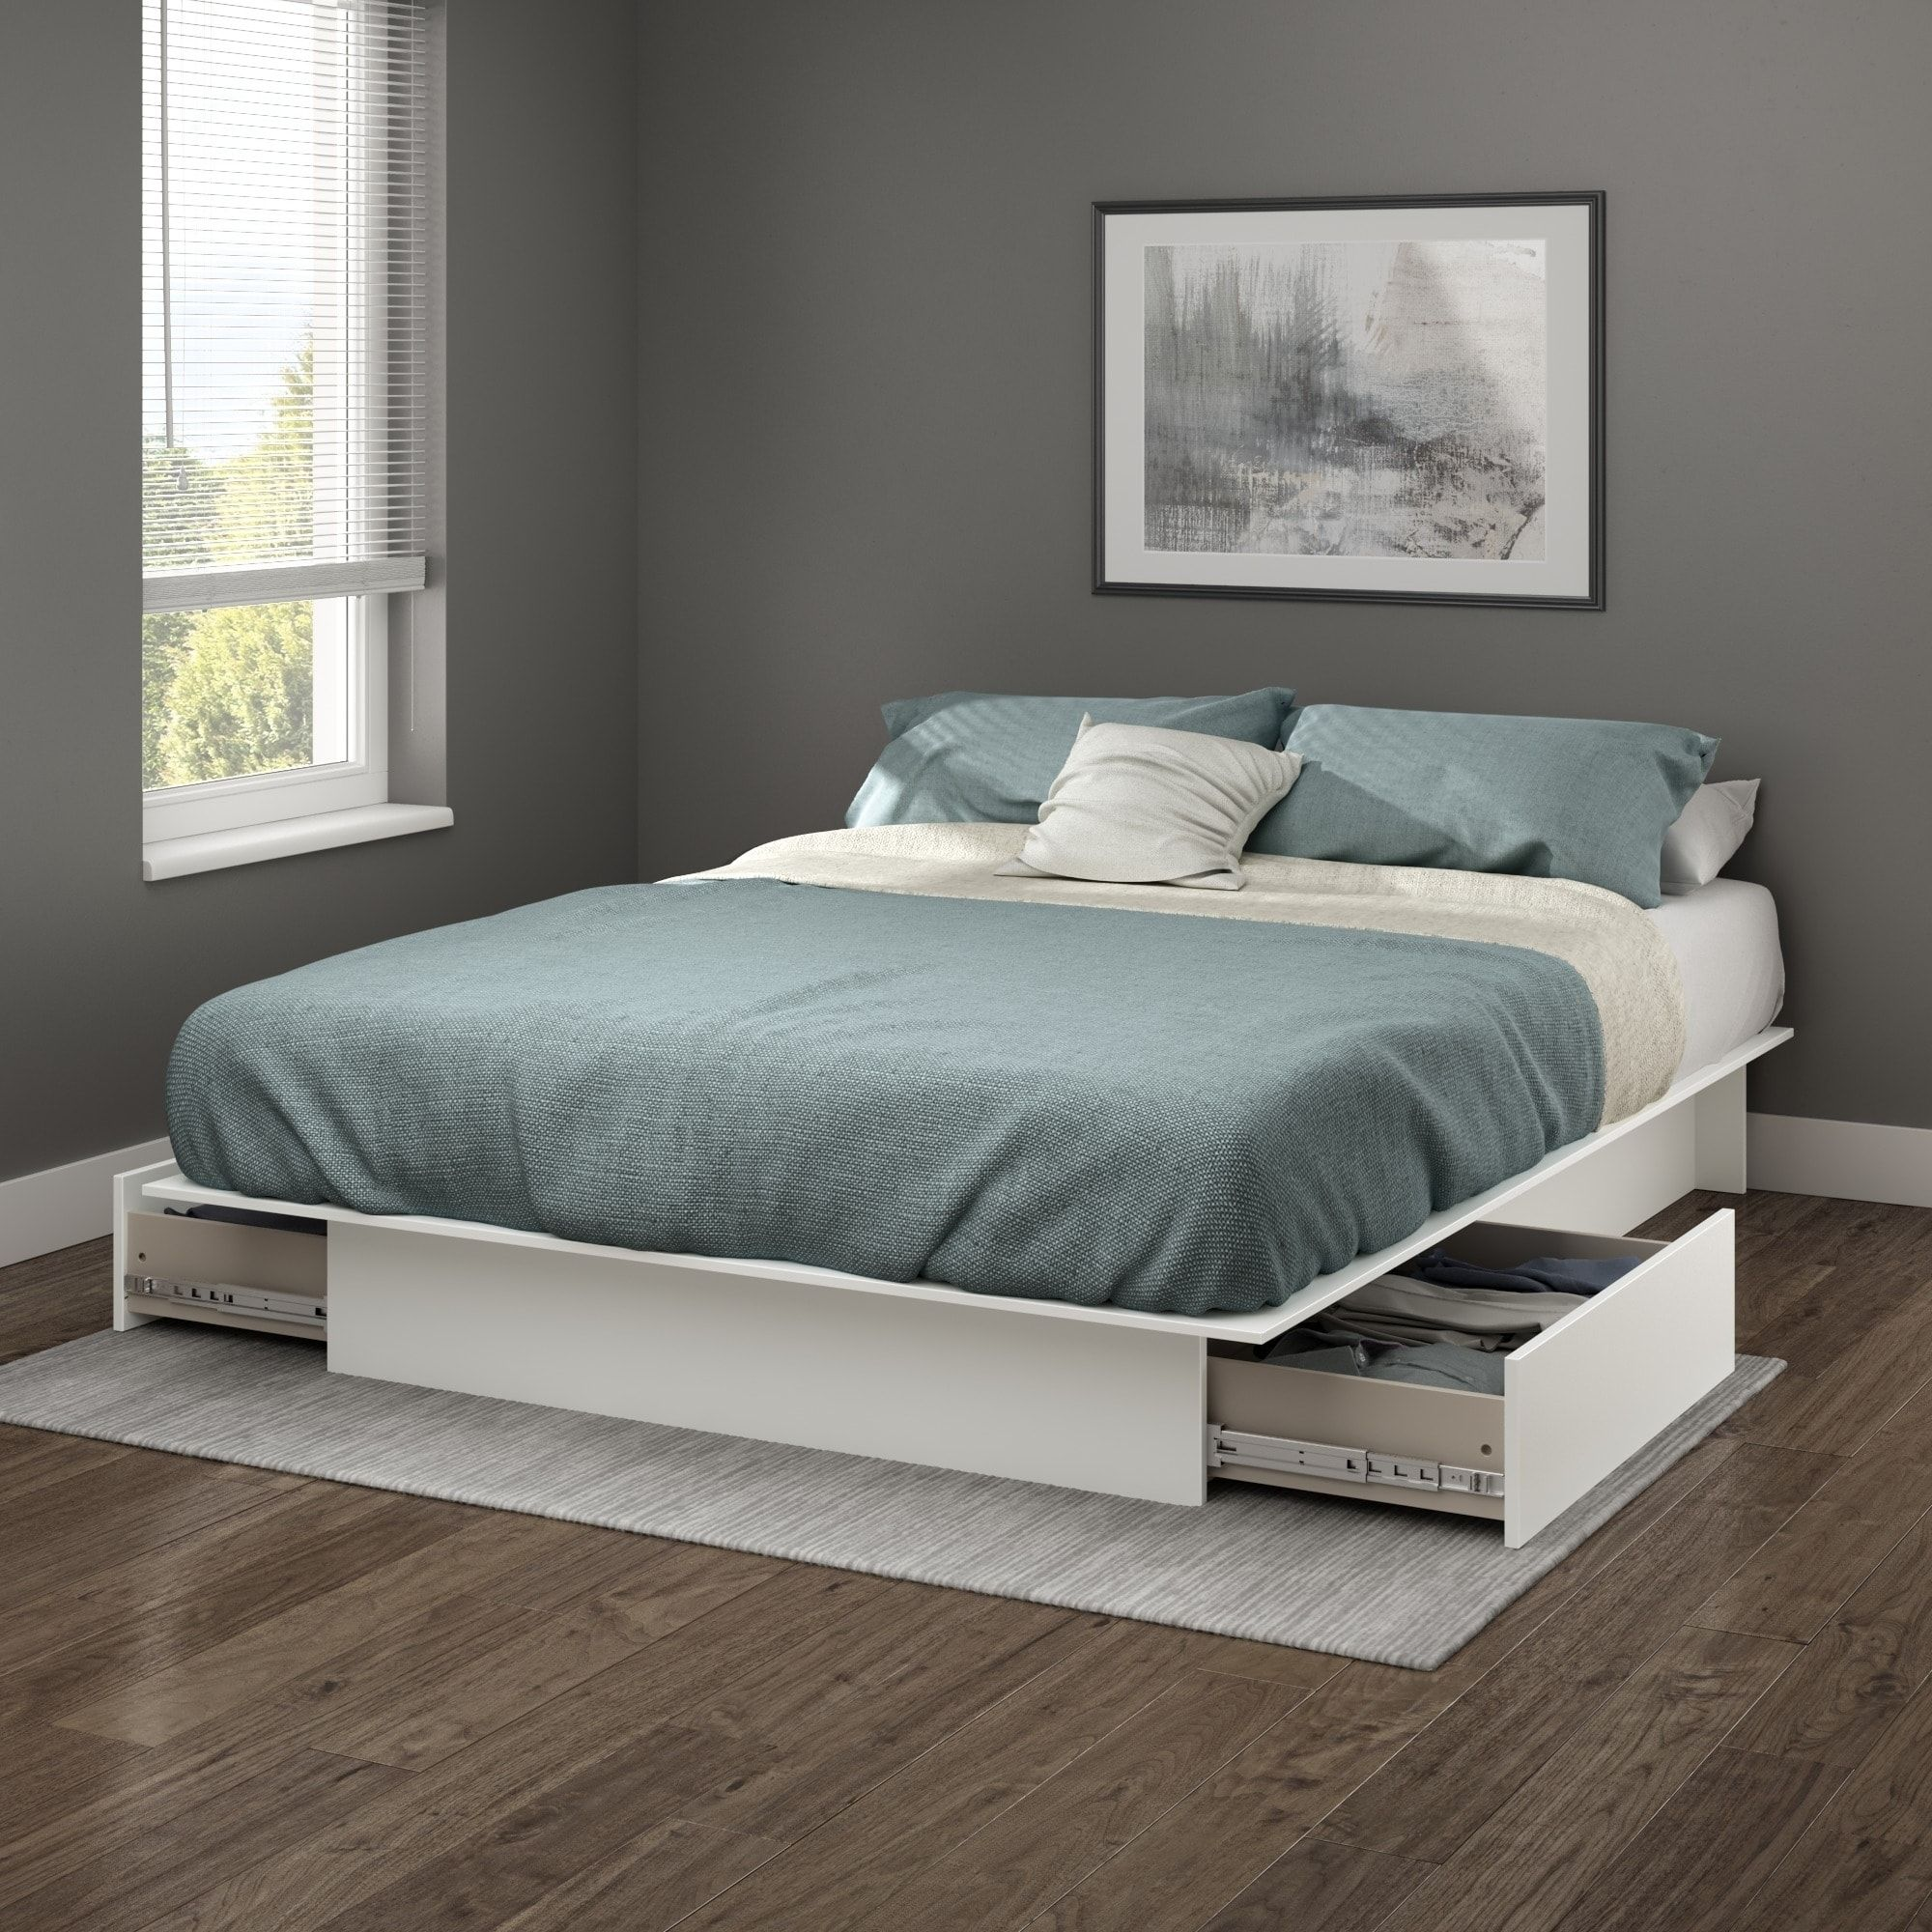 Online Shopping Bedding Furniture Electronics Jewelry Clothing More Platform Bed With Drawers Bed With Drawers Queen Platform Bed